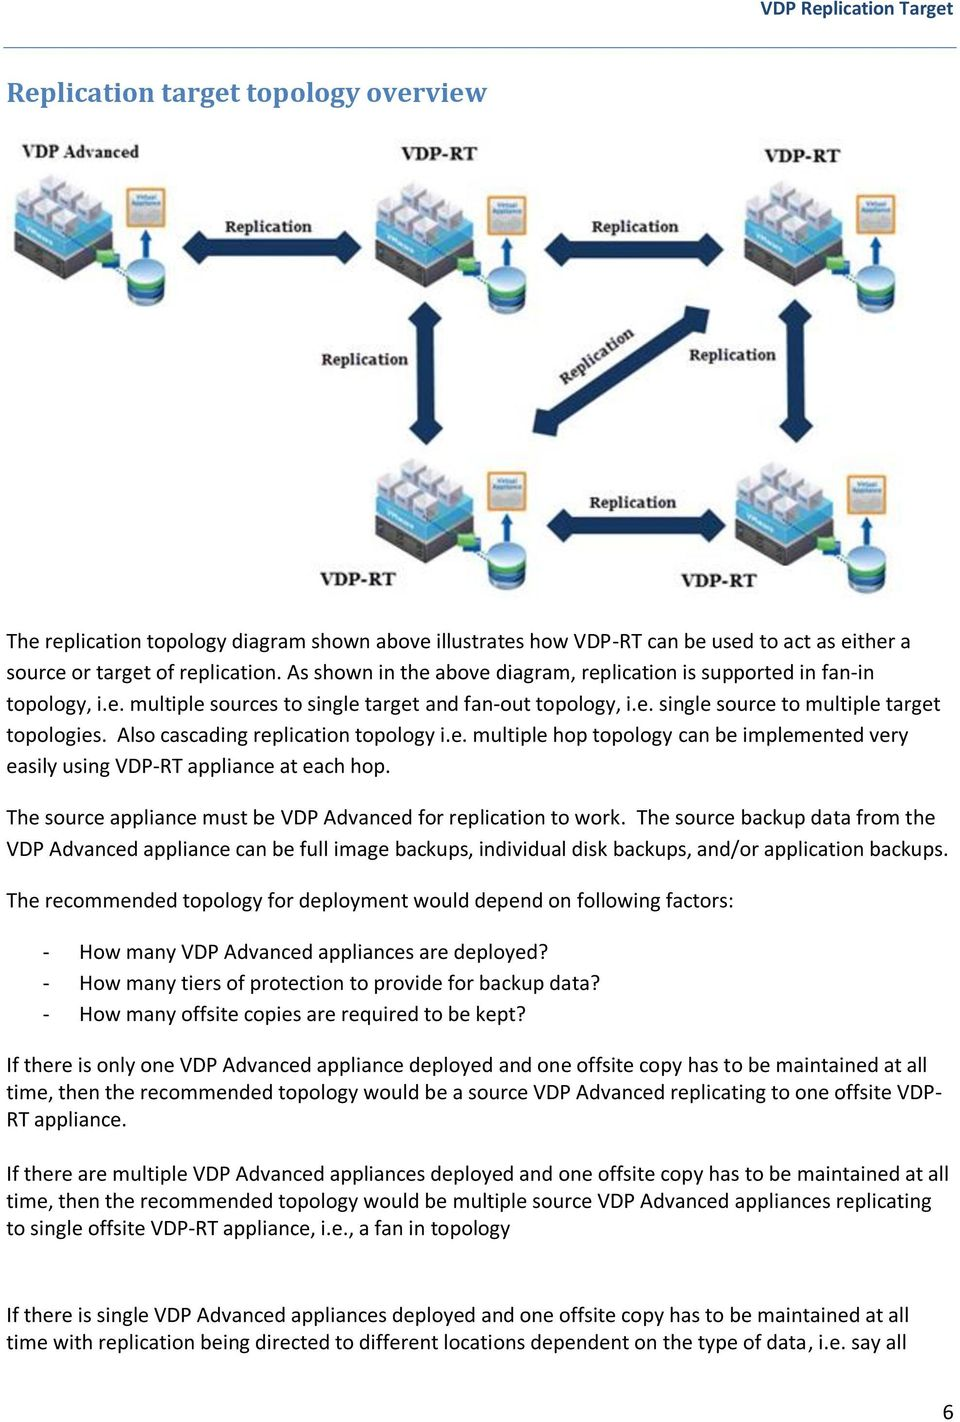 Also cascading replication topology i.e. multiple hop topology can be implemented very easily using VDP-RT appliance at each hop. The source appliance must be VDP Advanced for replication to work.